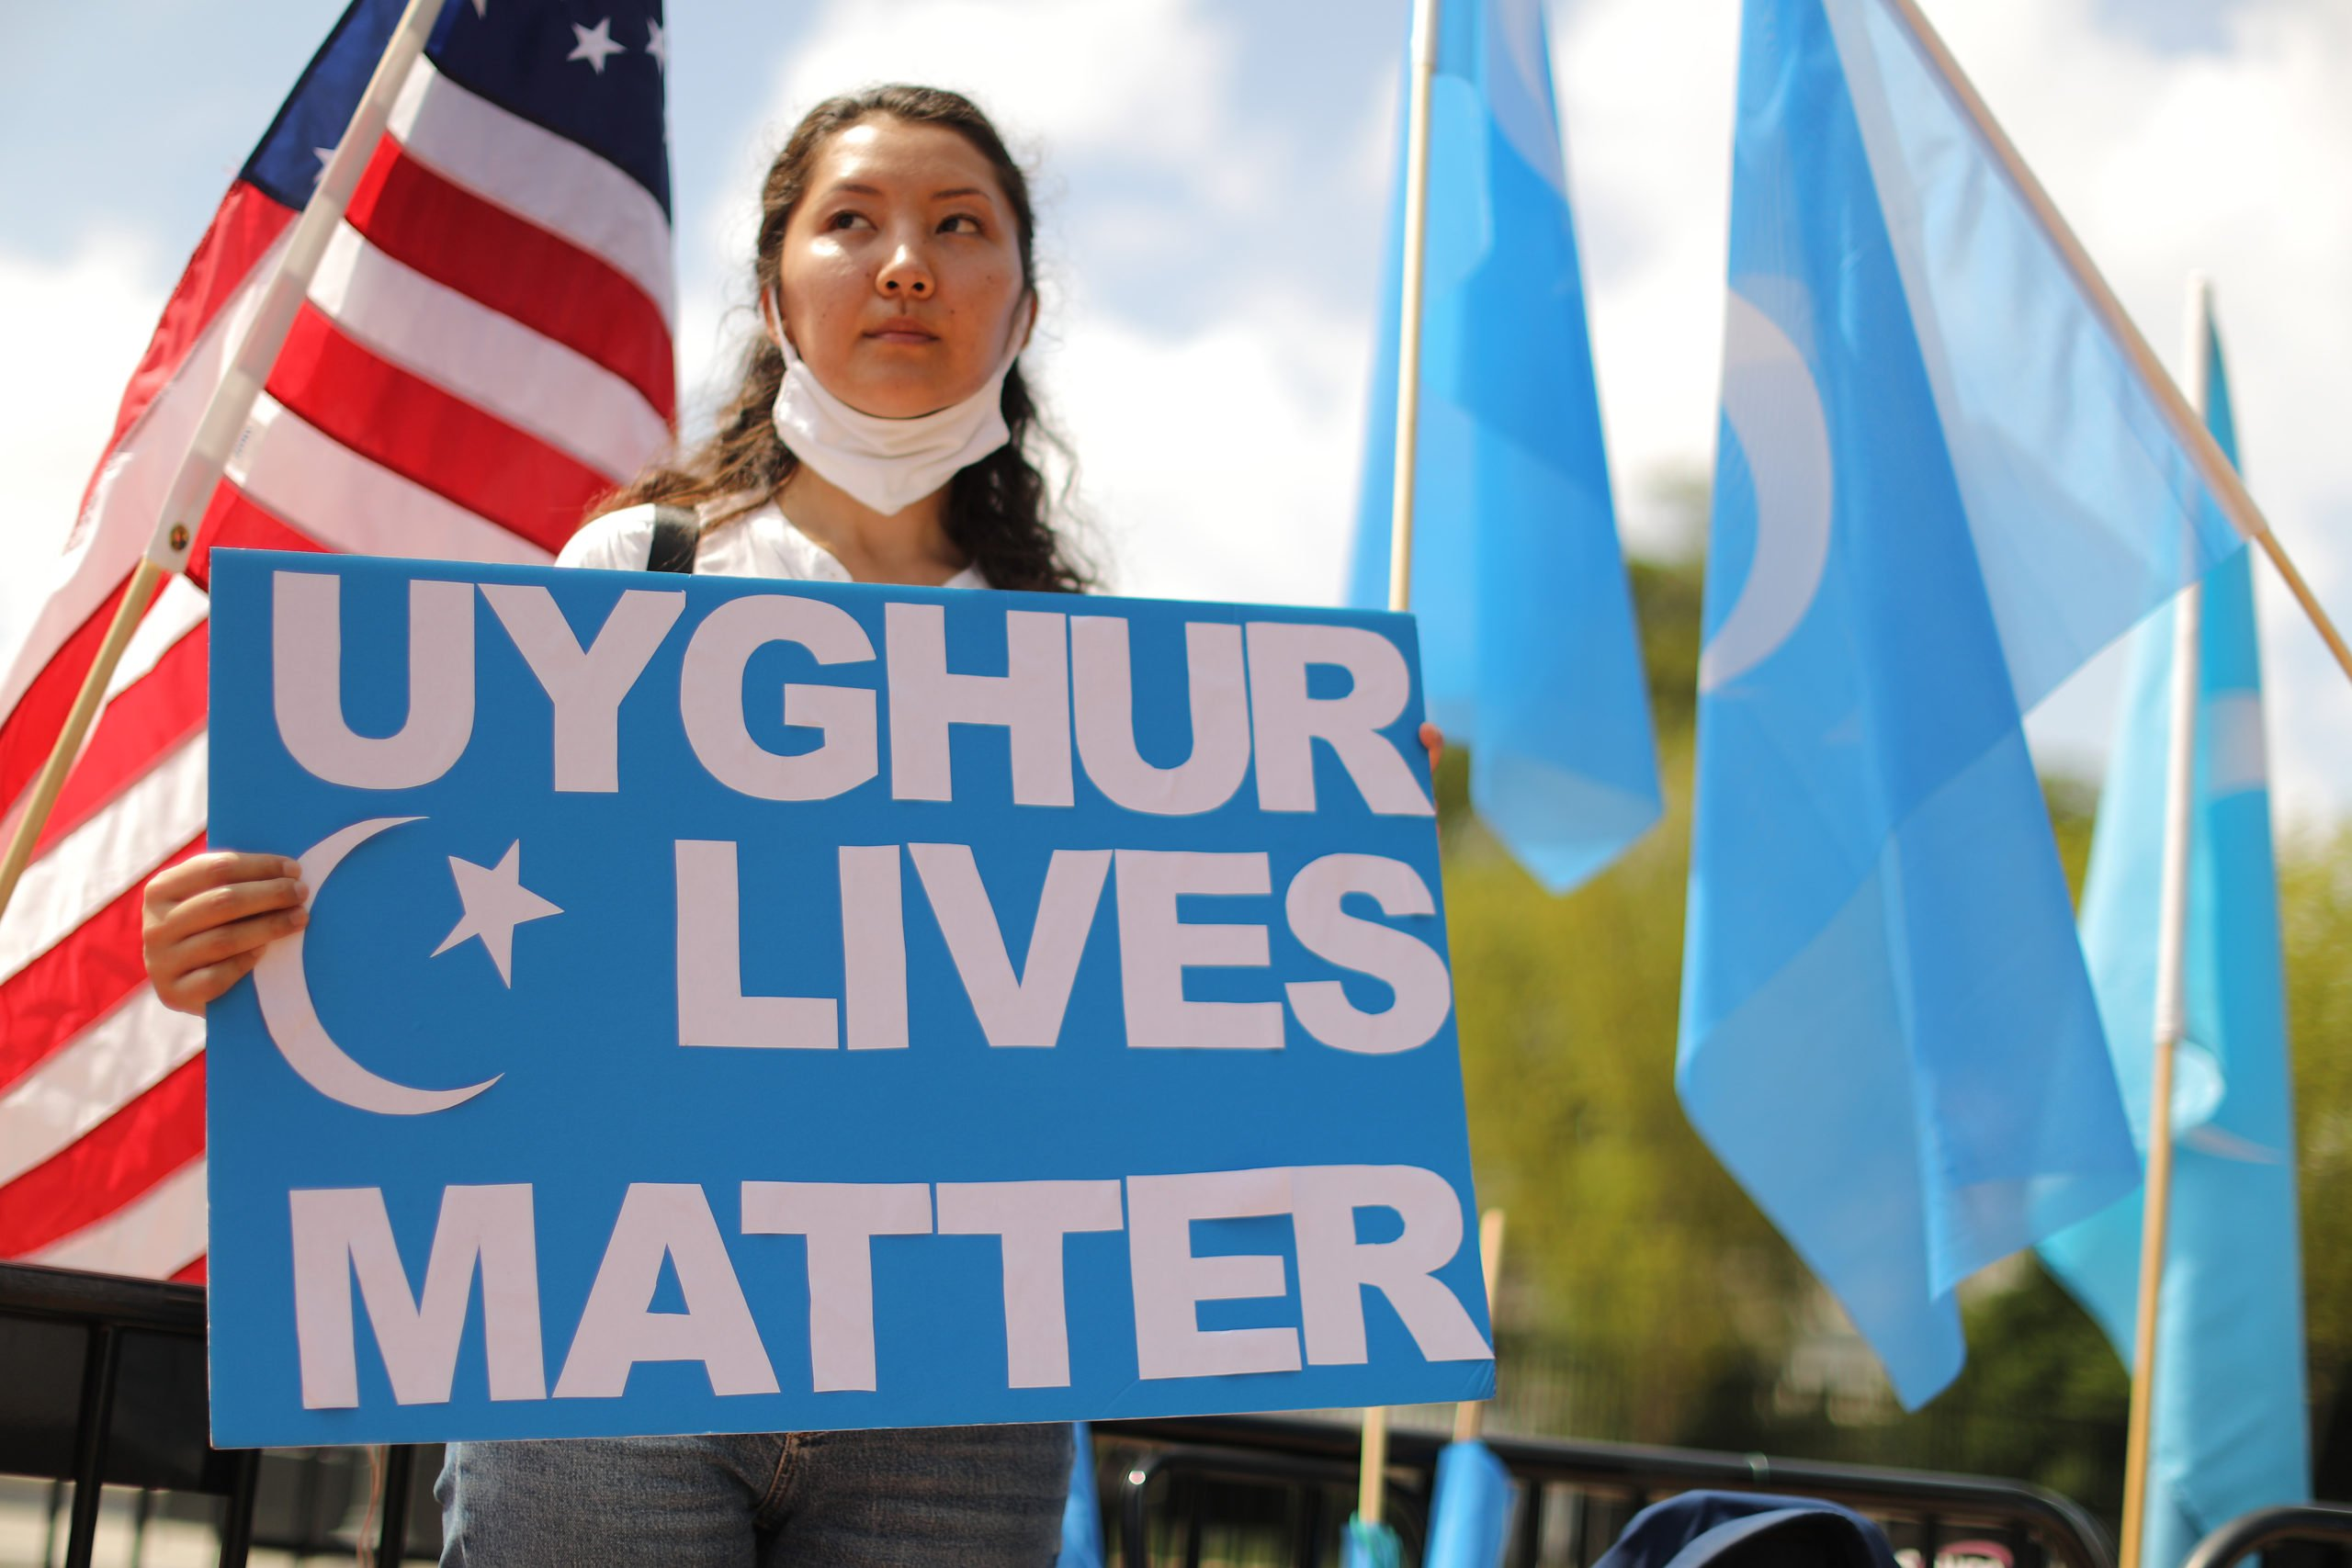 WASHINGTON, DC - AUGUST 14: Supporters and members of the East Turkistan National Awakening Movement rally outside the White House to urge the United States to end trade deals with China and take action to stop the oppression of the Uyghur and other Turkic peoples August 14, 2020 in Washington, DC. The ETNAM and East Turkistan Government in Exile (ETGE) groups submitted evidence to the international criminal court, calling for an investigation into senior Chinese officials, including Xi Jinping, for genocide and crimes against humanity. (Photo by Chip Somodevilla/Getty Images)